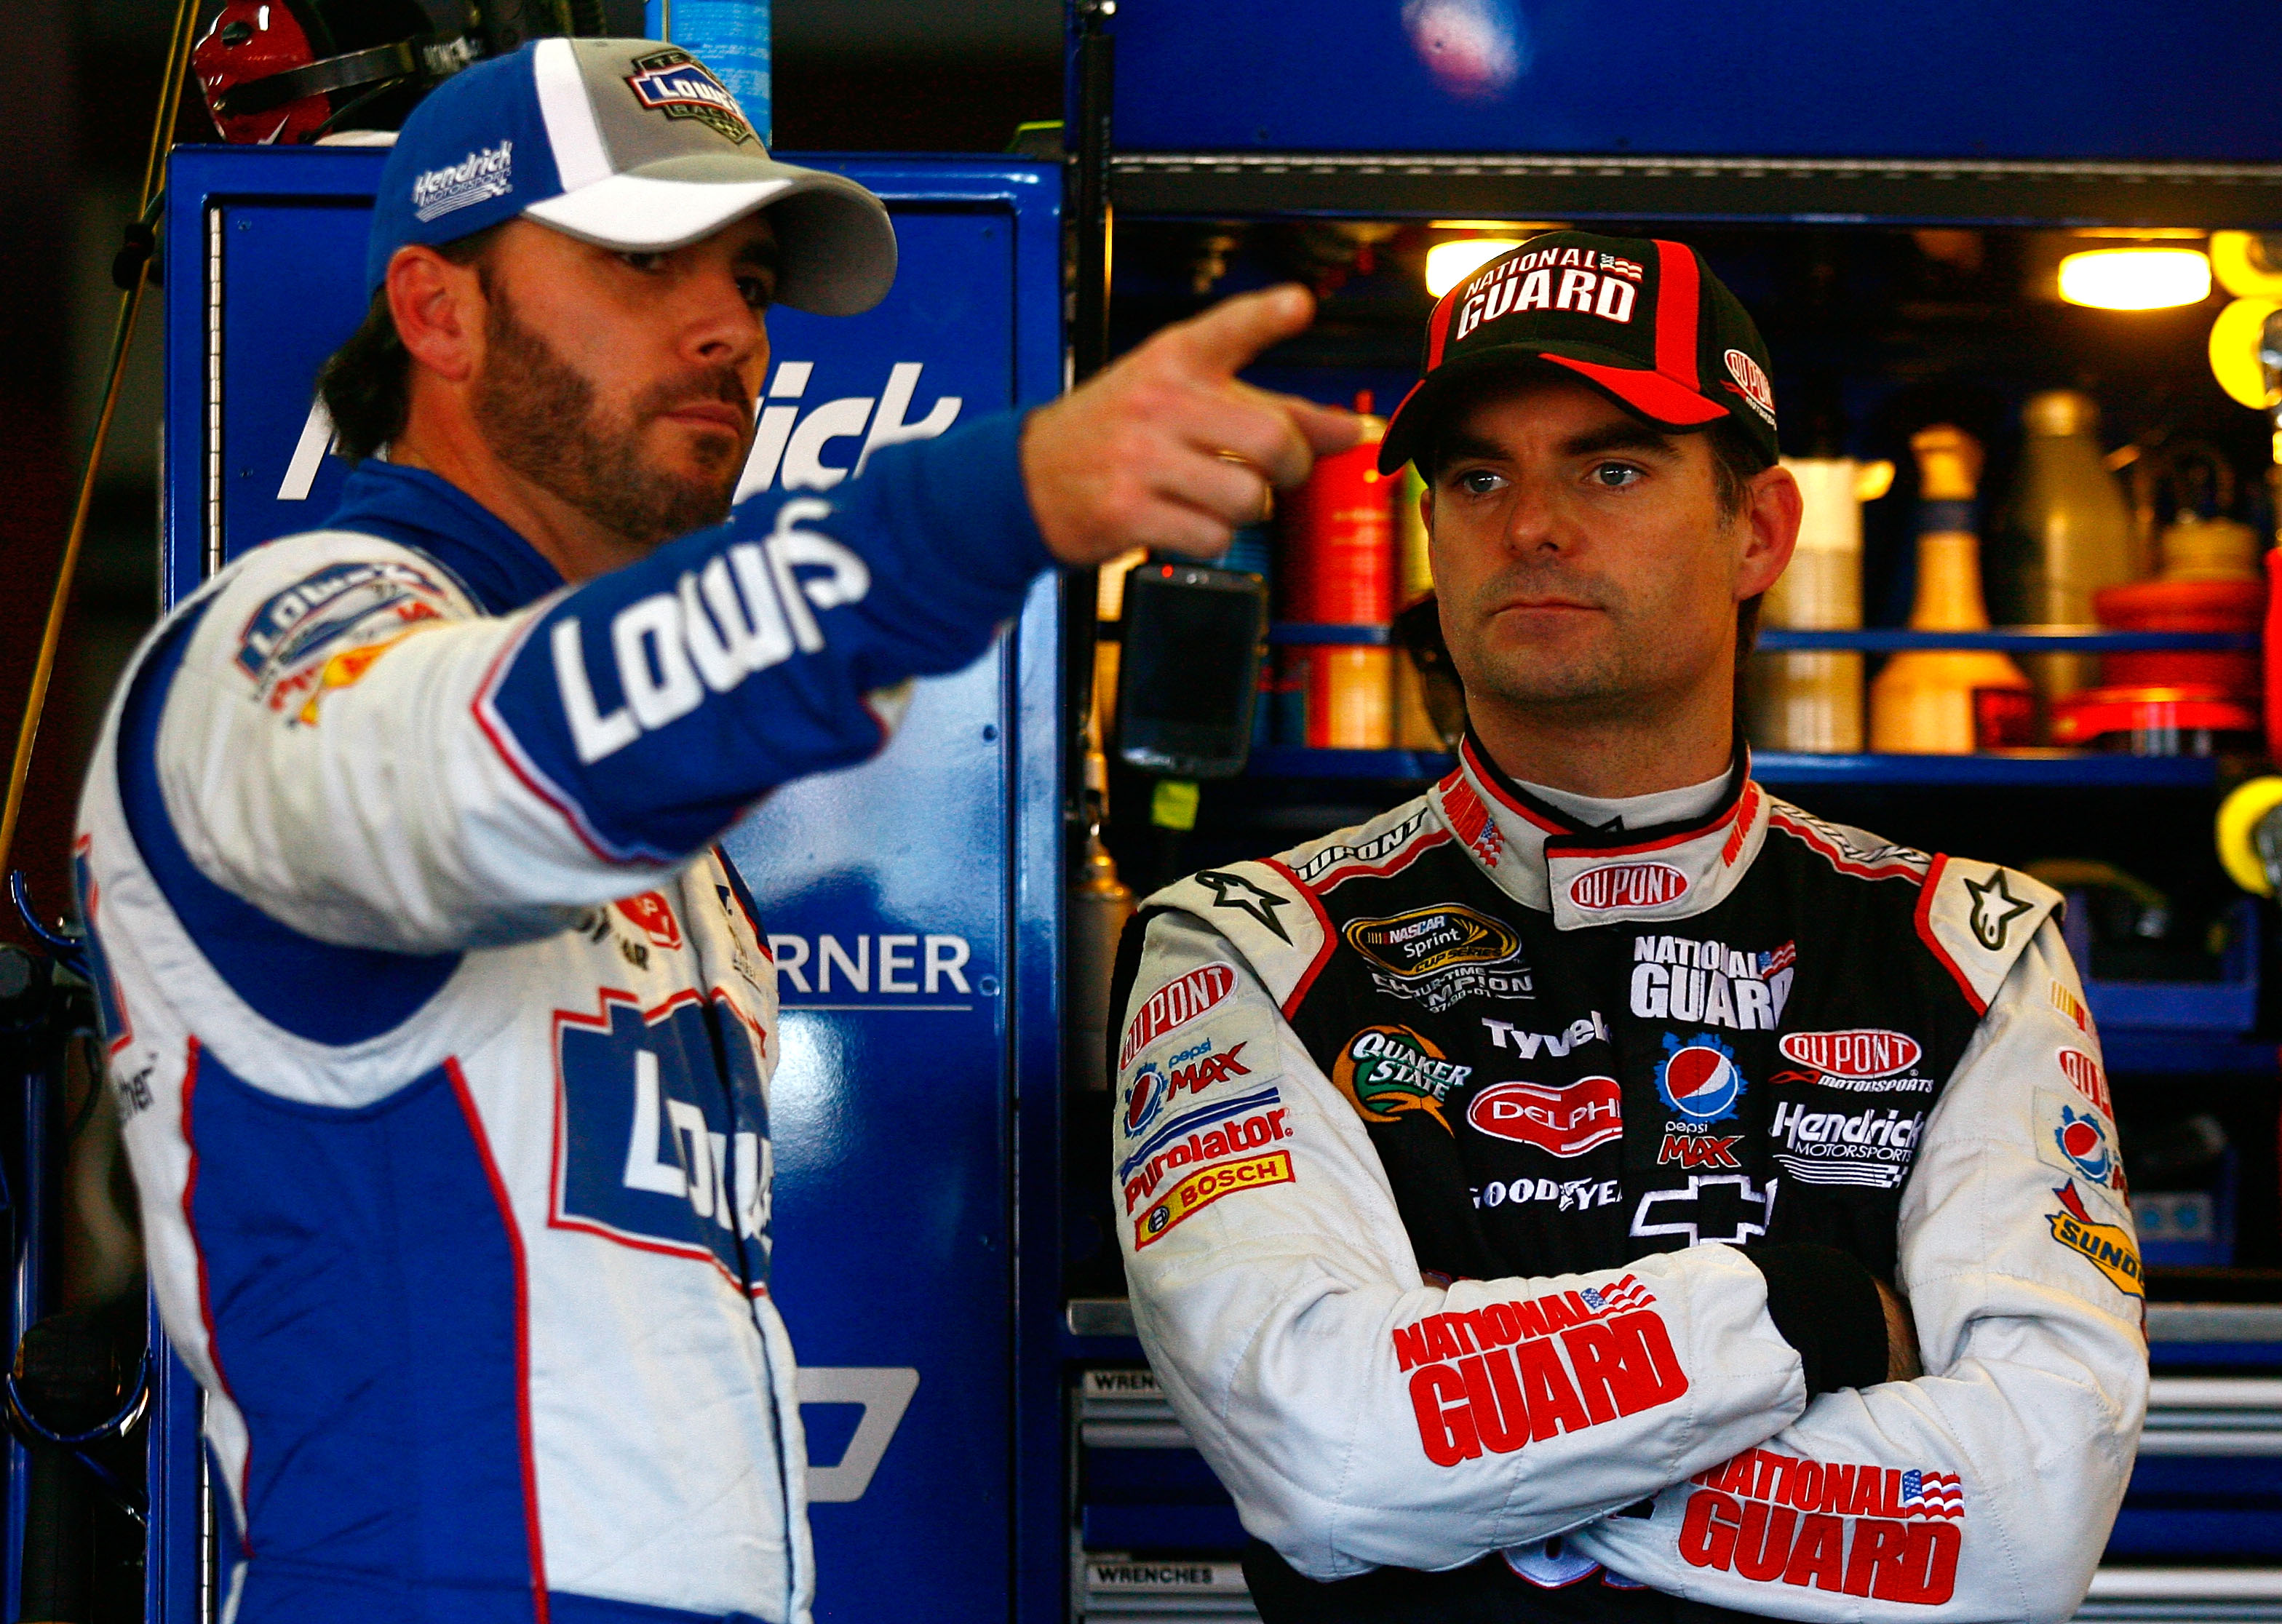 TALLADEGA, AL - OCTOBER 29:  Jimmie Johnson (L), driver of the #48 Lowe's Chevrolet, talks with Jeff Gordon, driver of the #24 DuPont/National Guard Chevrolet, in the garage during practice for the NASCAR Sprint Cup Series AMP Energy Juice 500 at Talladeg